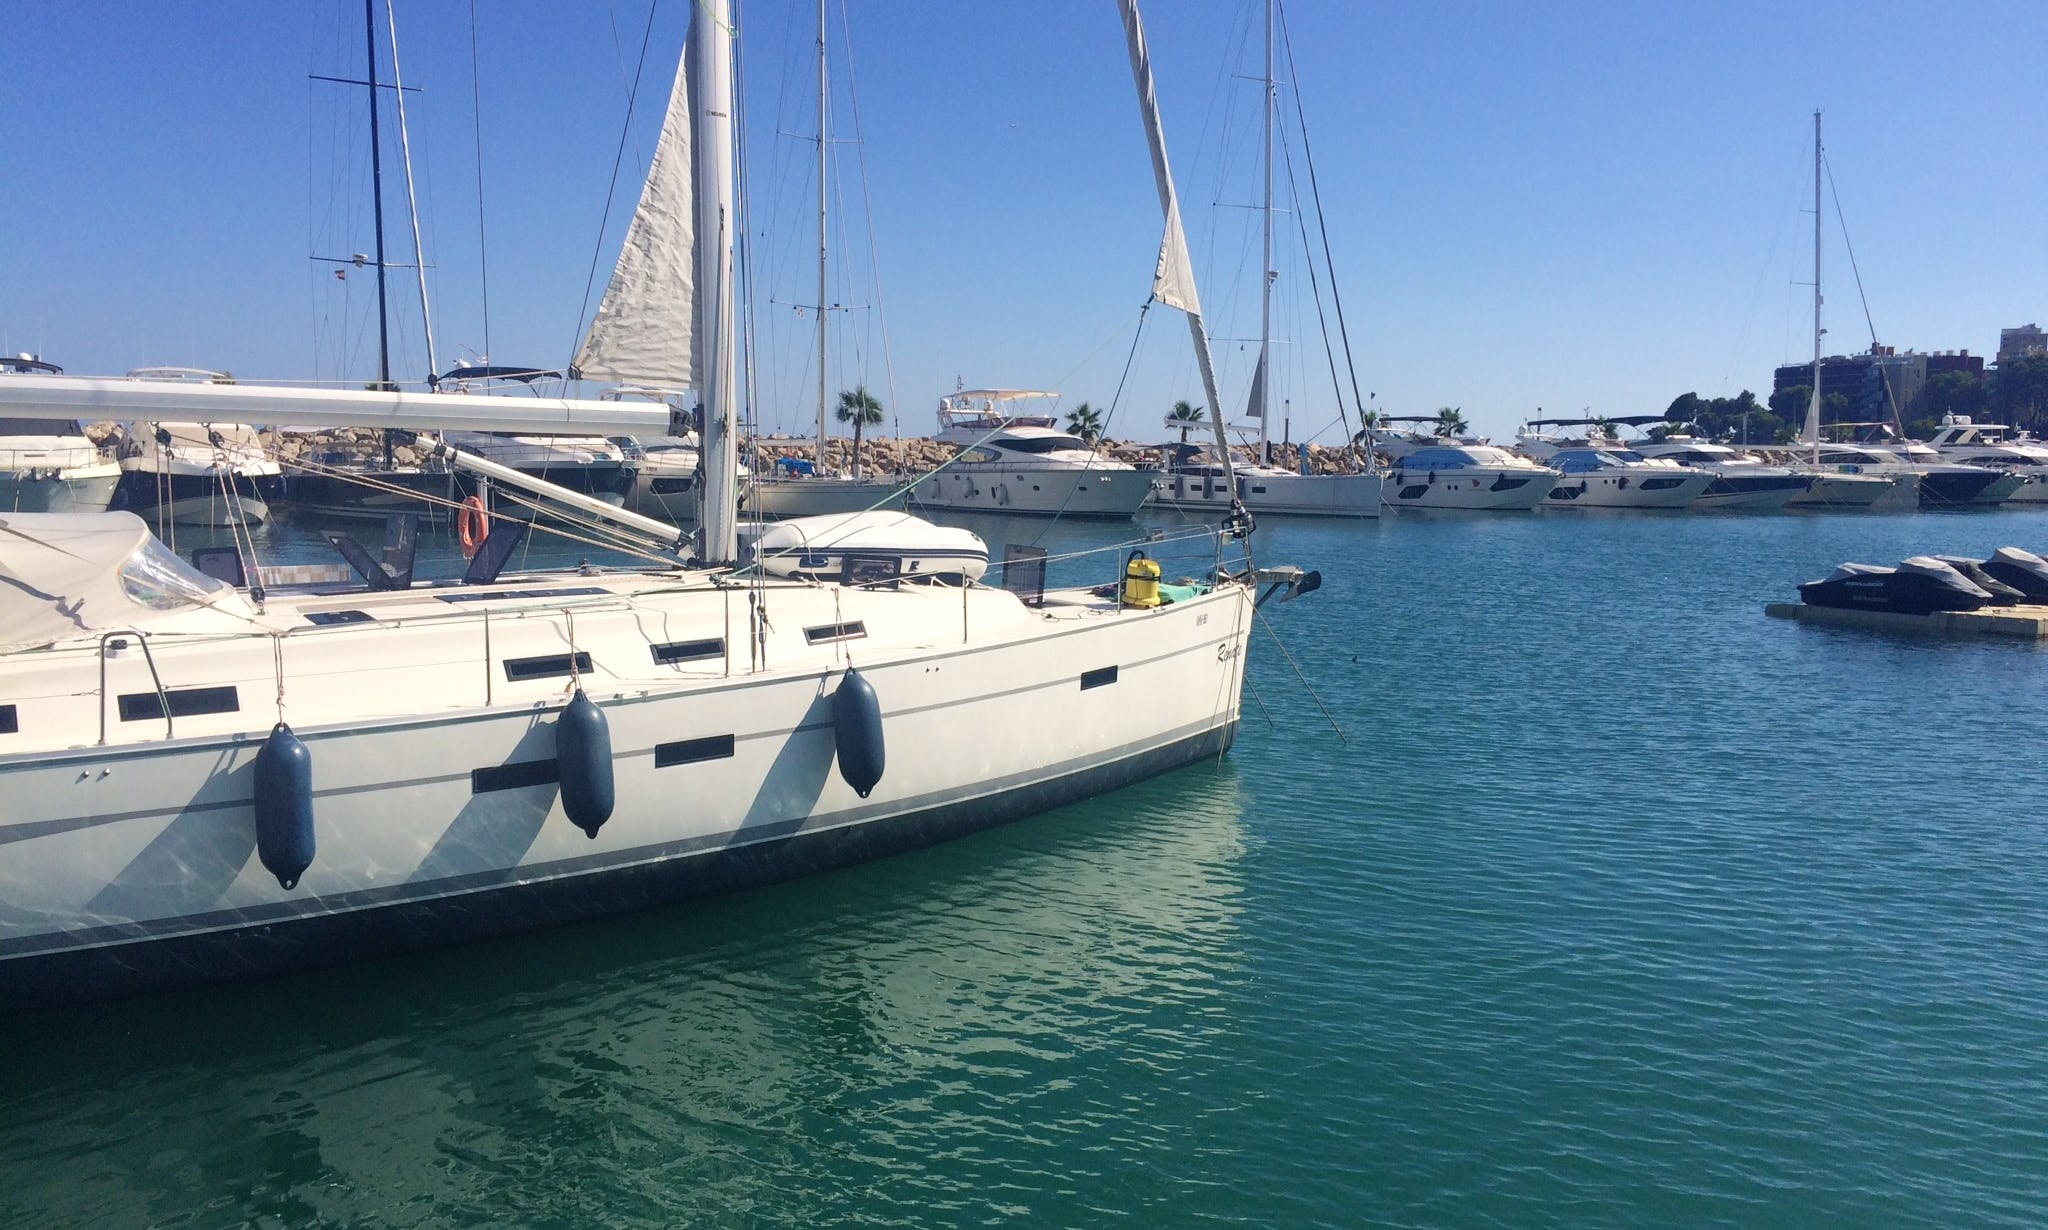 An Amazing Sailing Experience On Cruising Monohull For 8 People In Palma, Balears